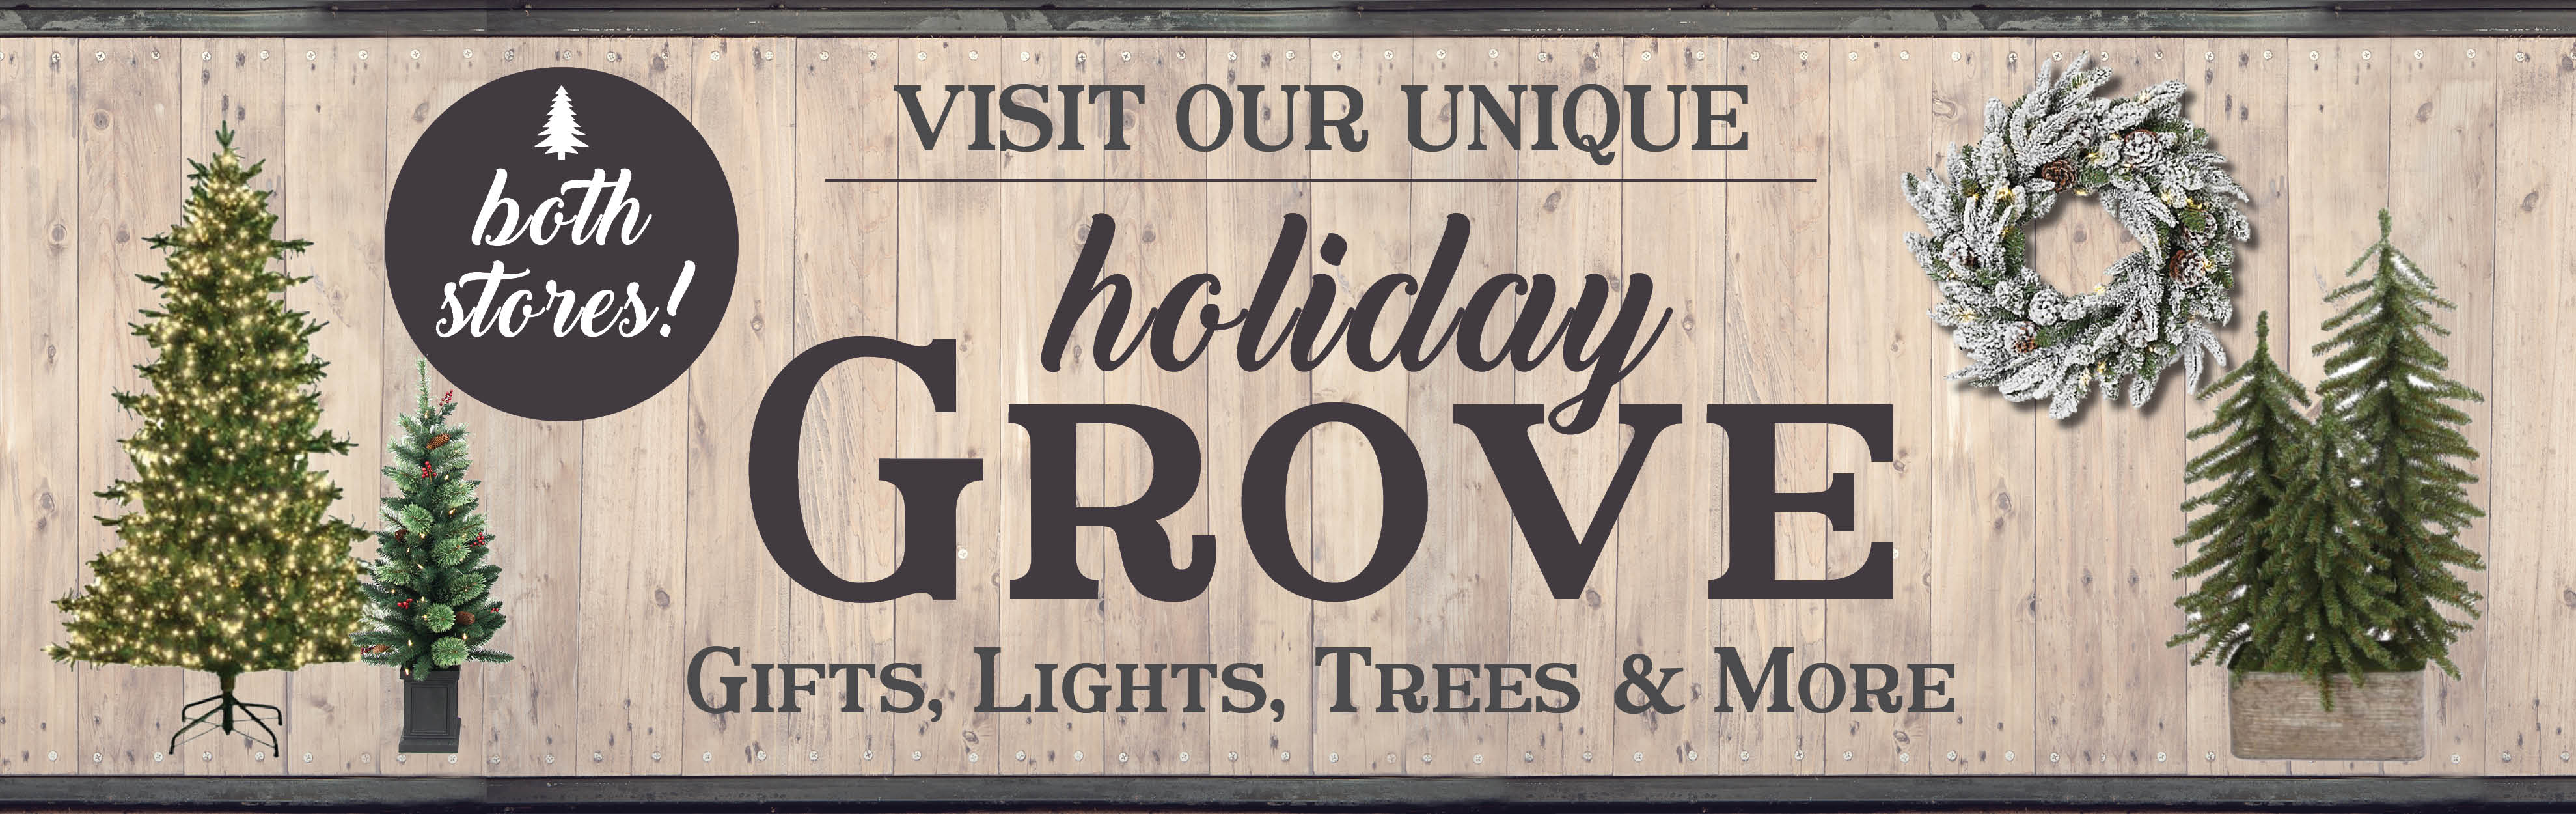 Holiday-Grove-Slider